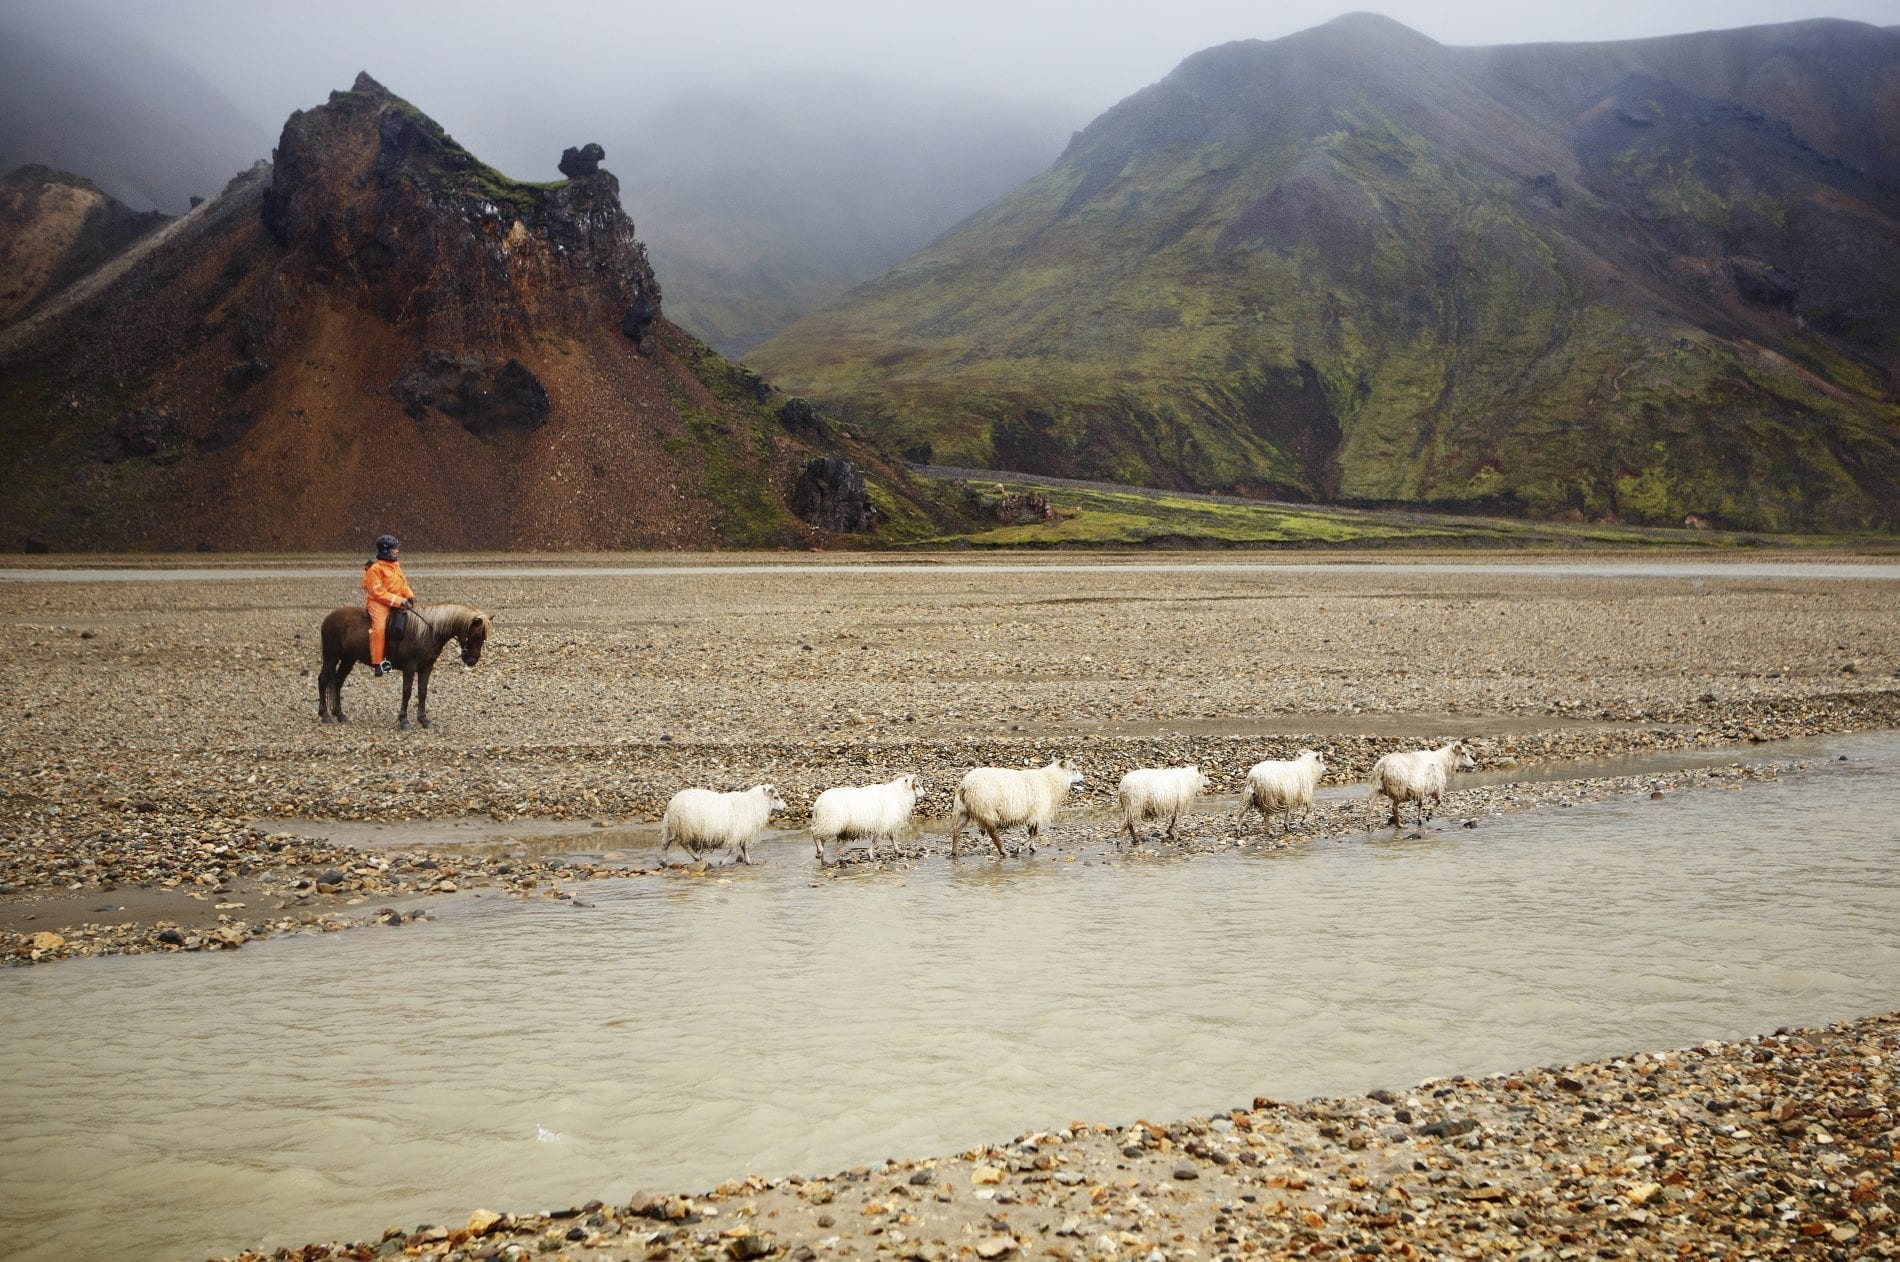 Sheep round up. Six sheep and one person horse riding.